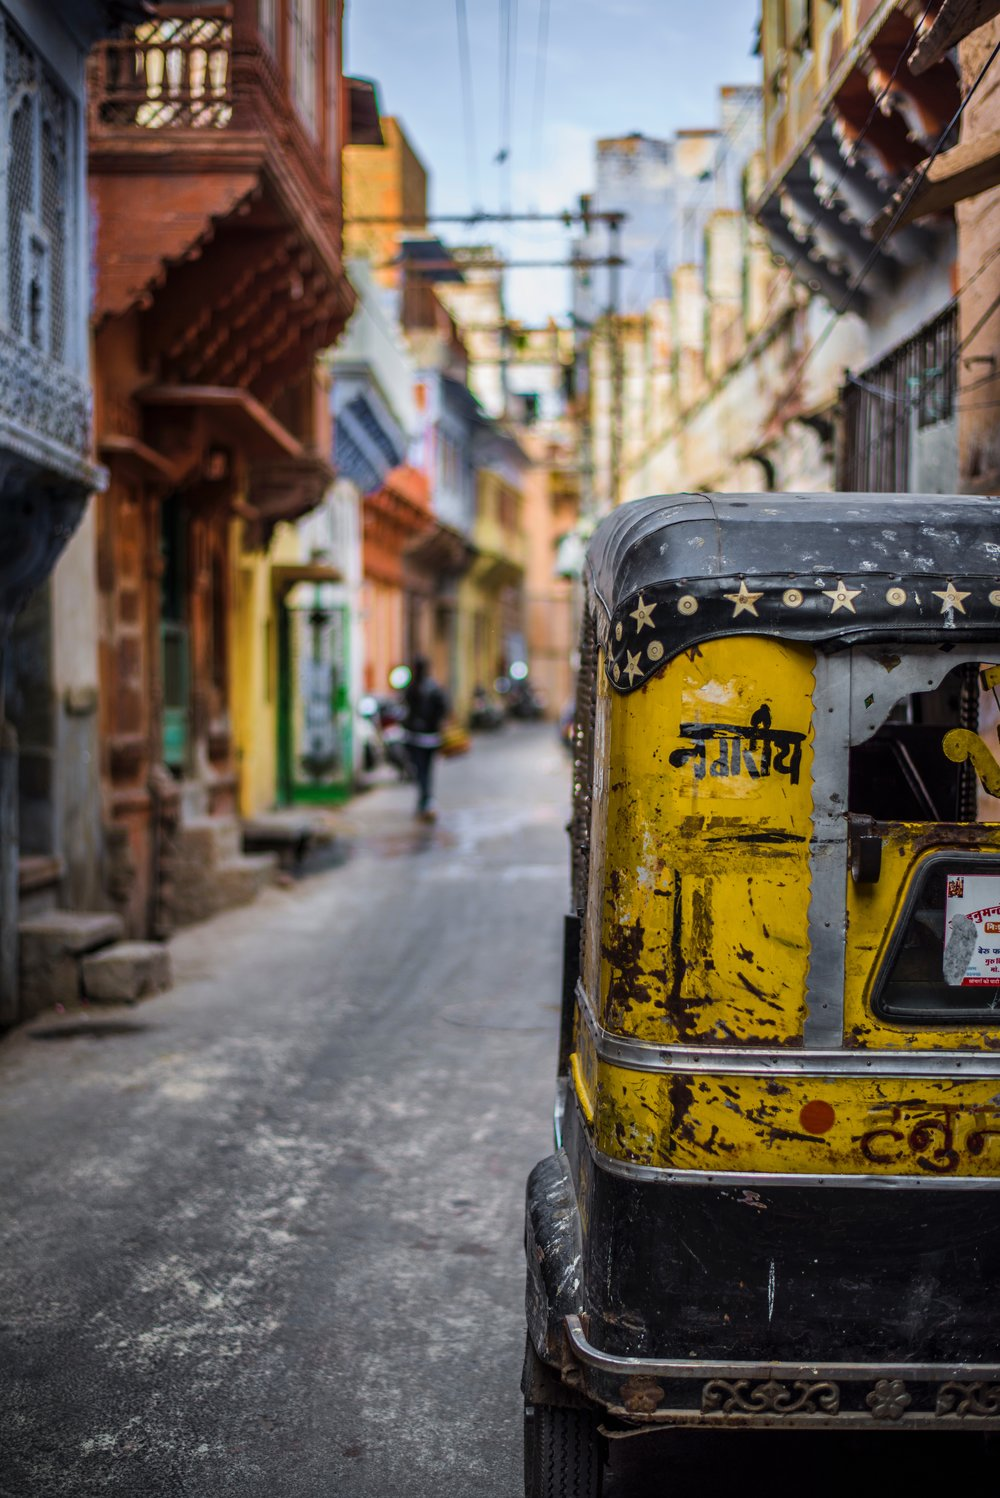 EXPLORE INDIA WITH BRIAN BALDRATI  - A 10 Day Adventure Across North India with a Brazilian PhotographerTrip 1: Sept 6th-16th 2018Trip 2: Sept 21st-Oct 1st 2018Location: Delhi, Taj Mahal, Rajasthan, Base of Himalayan Mountains